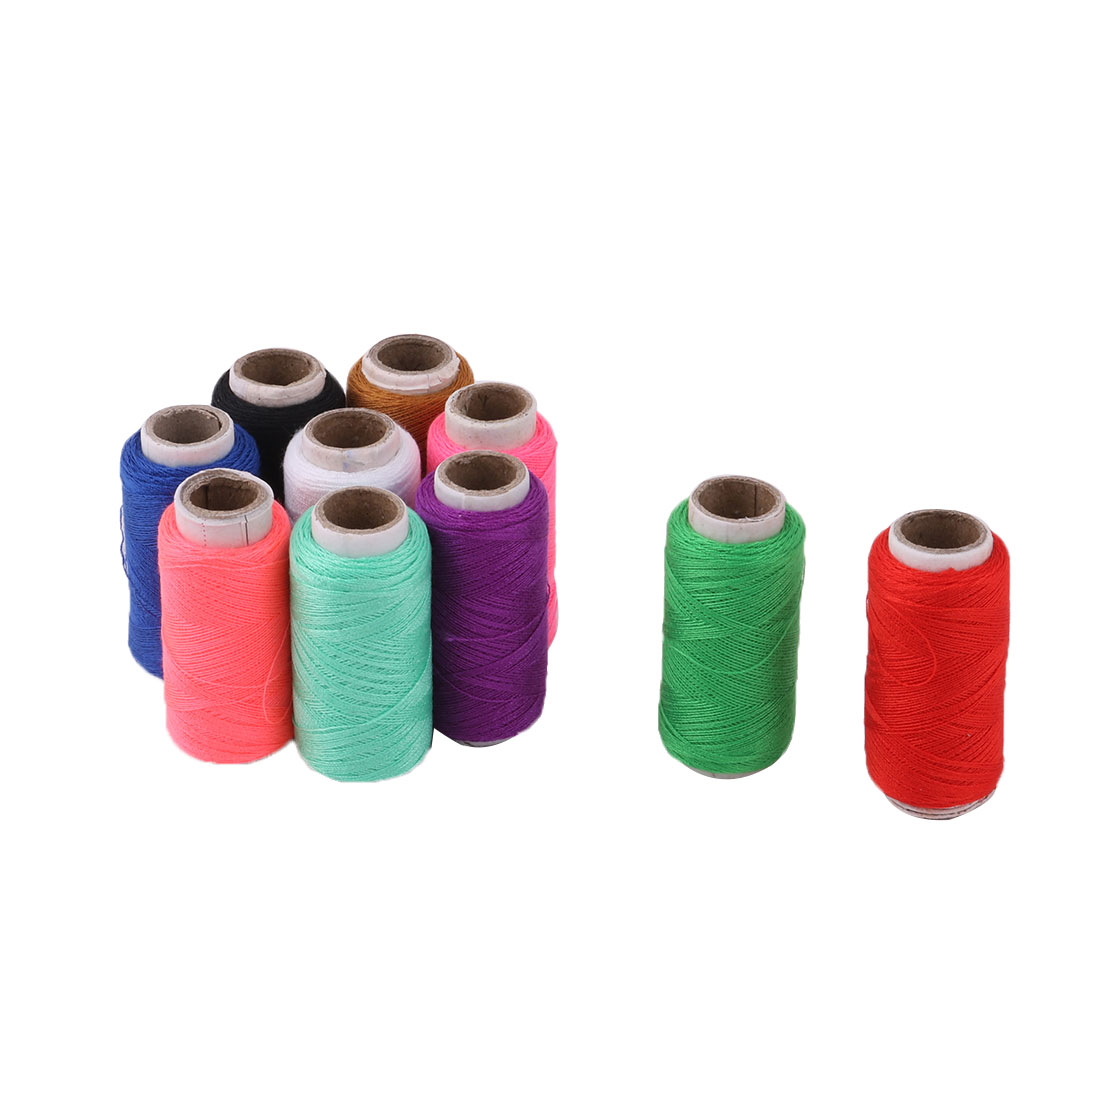 Family Polyester Handicraft DIY Clothes T-shirt Sewing Thread Spool Reel 10 Pcs